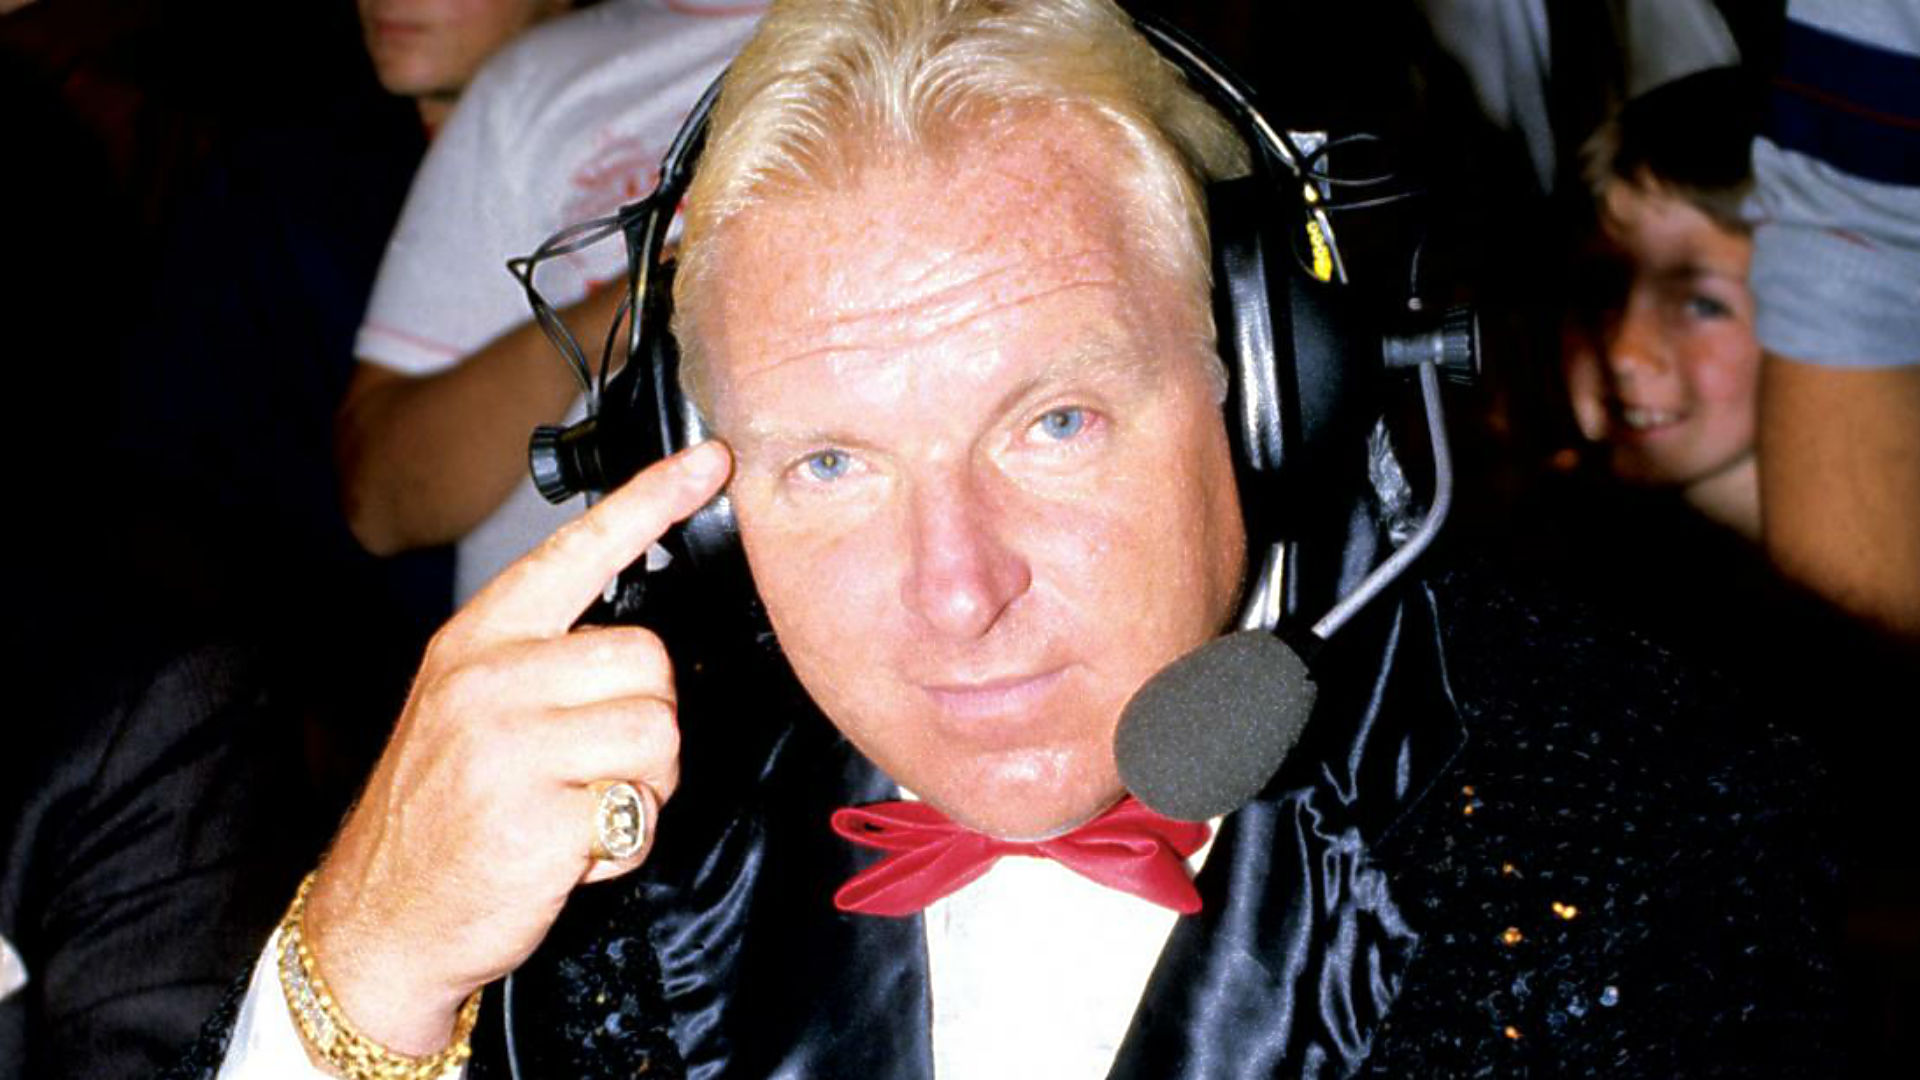 WWE Hall of Famer Bobby 'The Brain' Heenan dies at 72